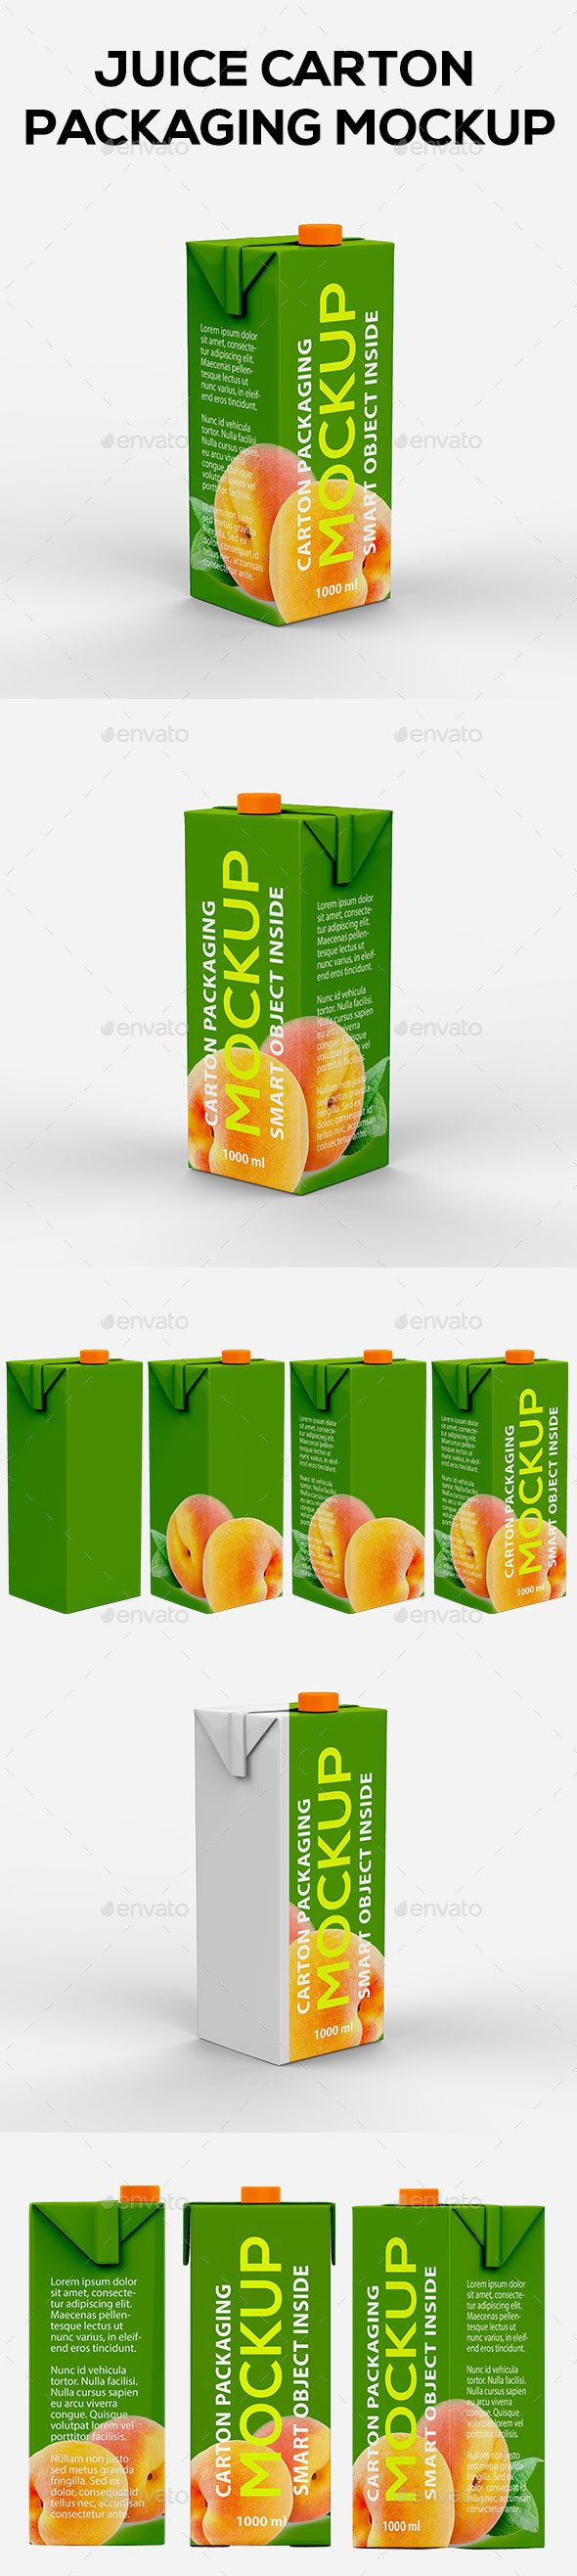 Juice Carton Packaging #Mockup - Food and Drink #Packaging Download here: https://graphicriver.net/item/juice-carton-packaging-mockup/20068183?ref=alena994